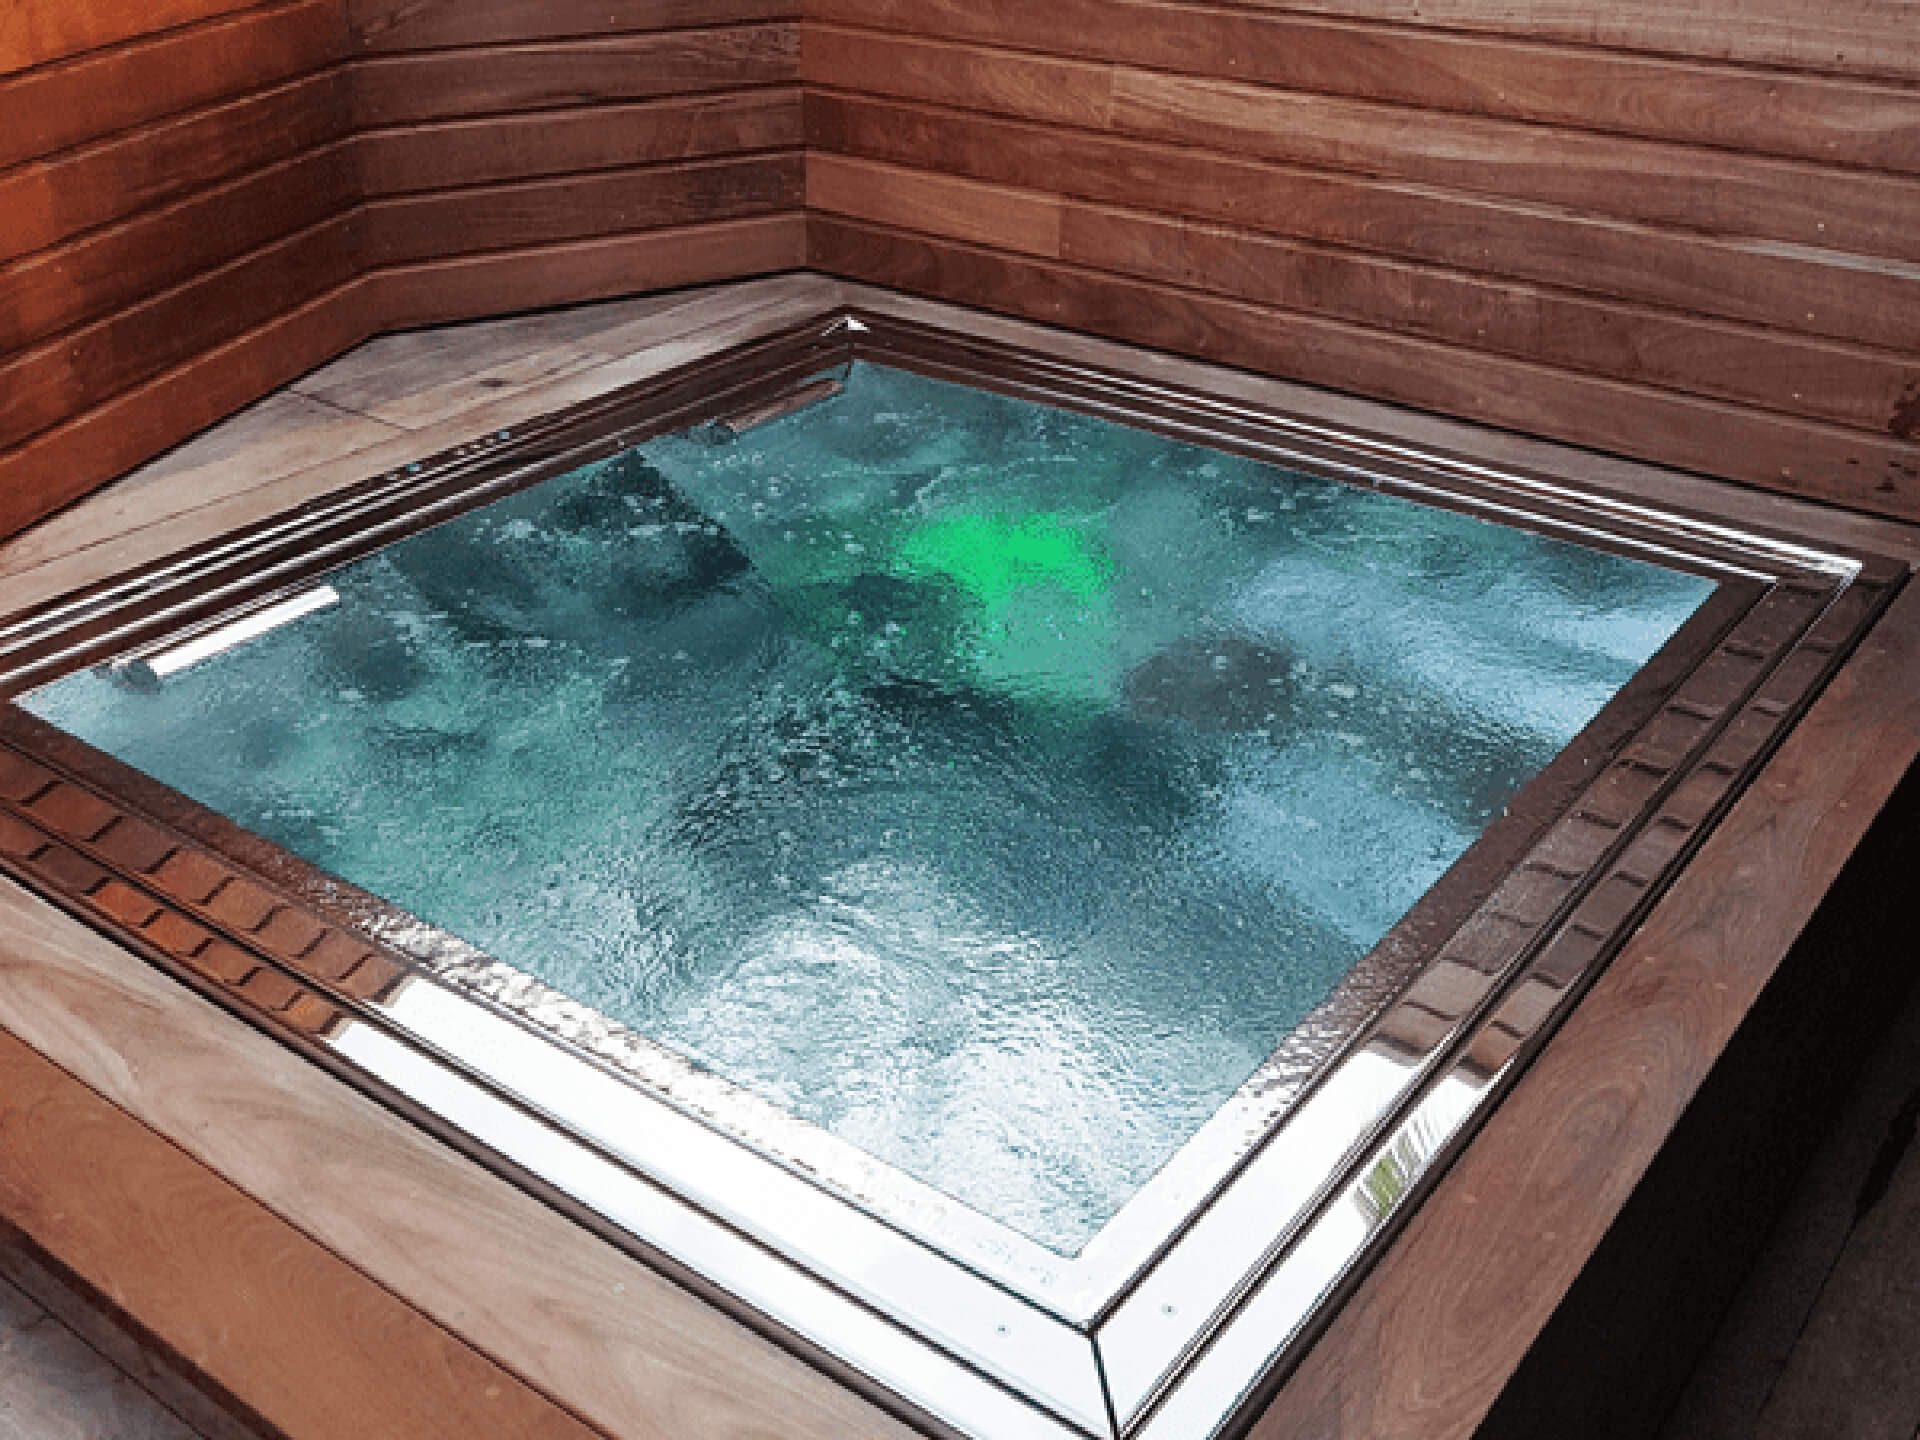 Stainless steel spa, installation bain nordique storvatt, installation bain nordique, installation spa